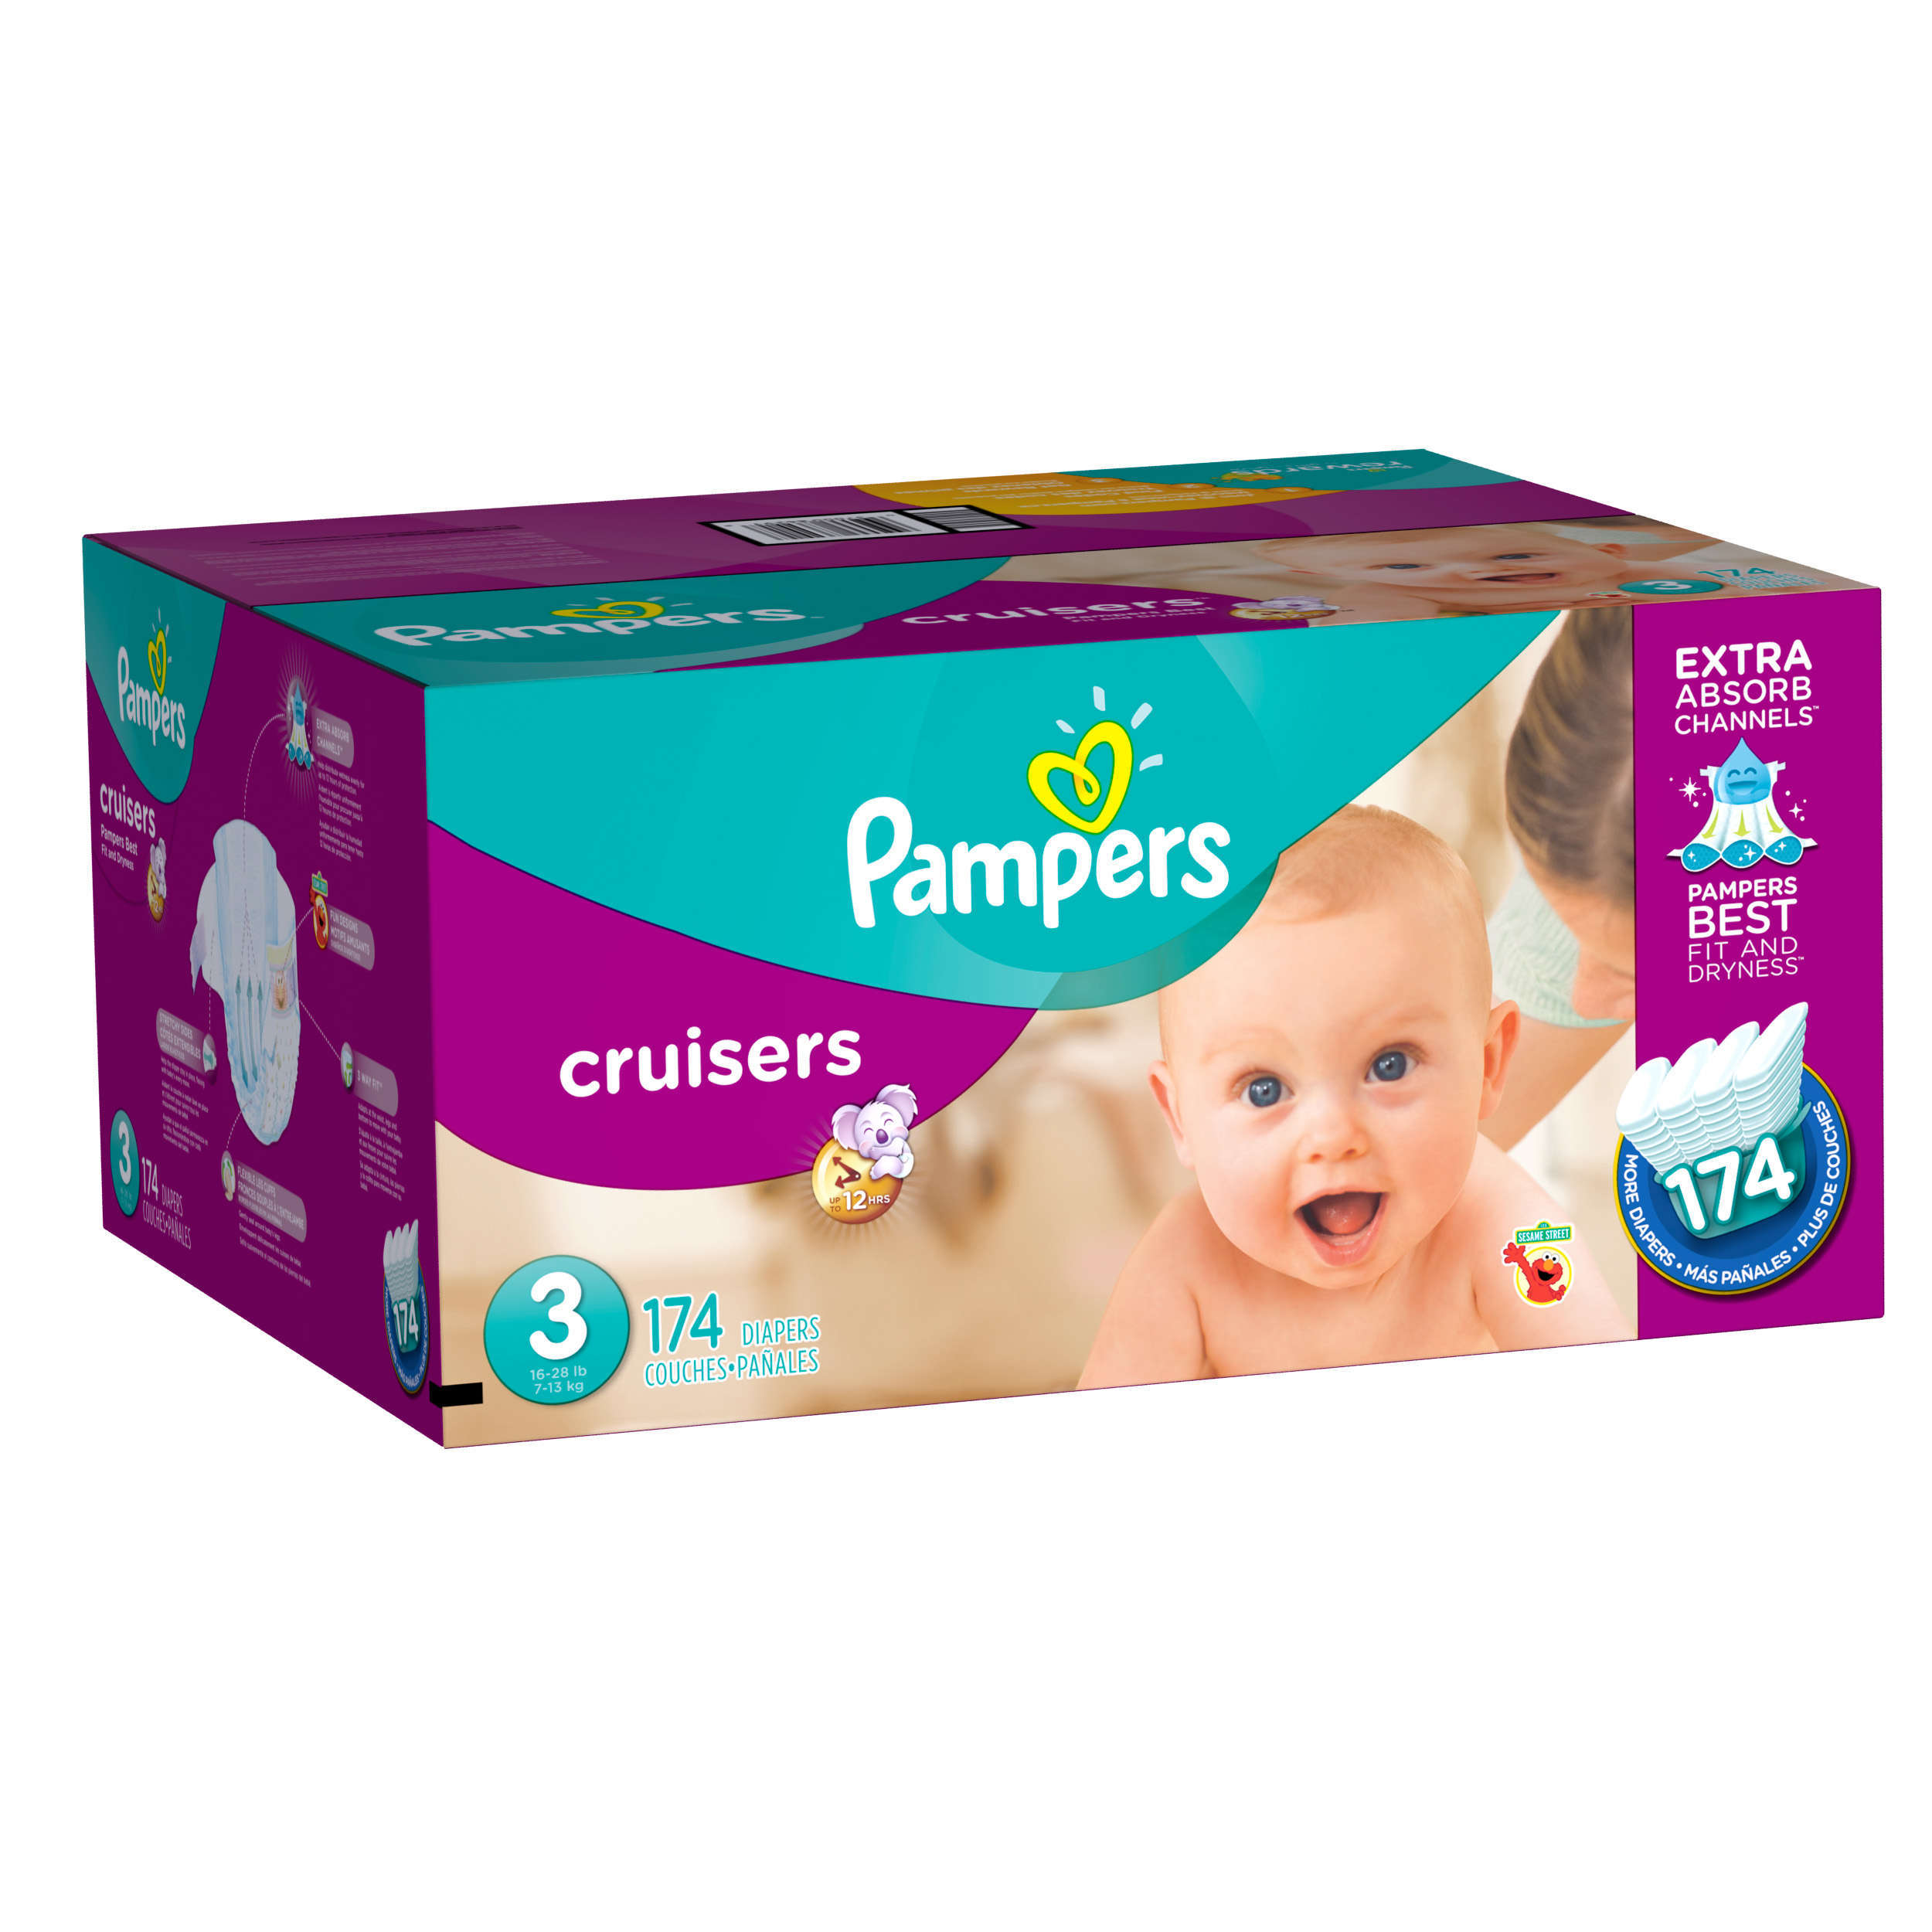 Pampers Cruisers Diapers, Size 3, 92 Diapers